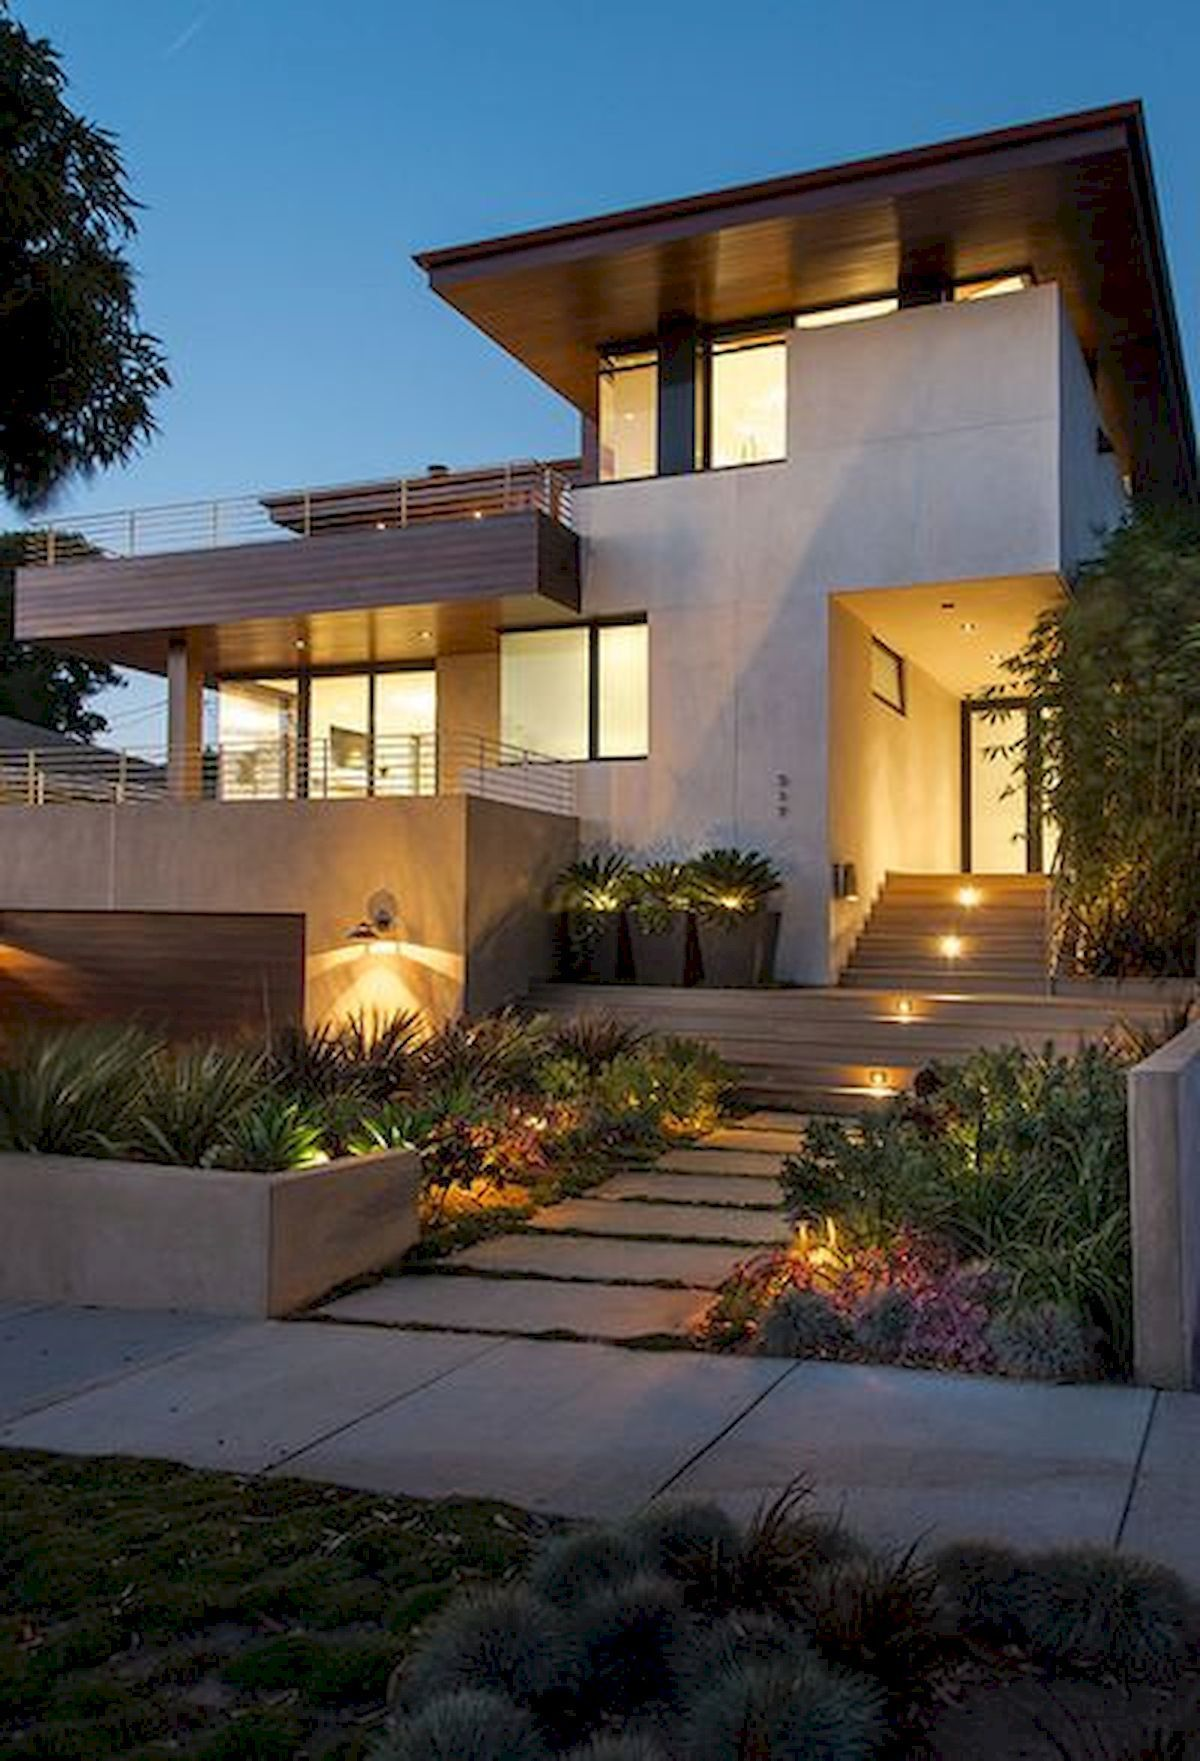 90 simple and beautiful front yard landscaping ideas on a on inspiring trends front yard landscaping ideas minimal budget id=63034